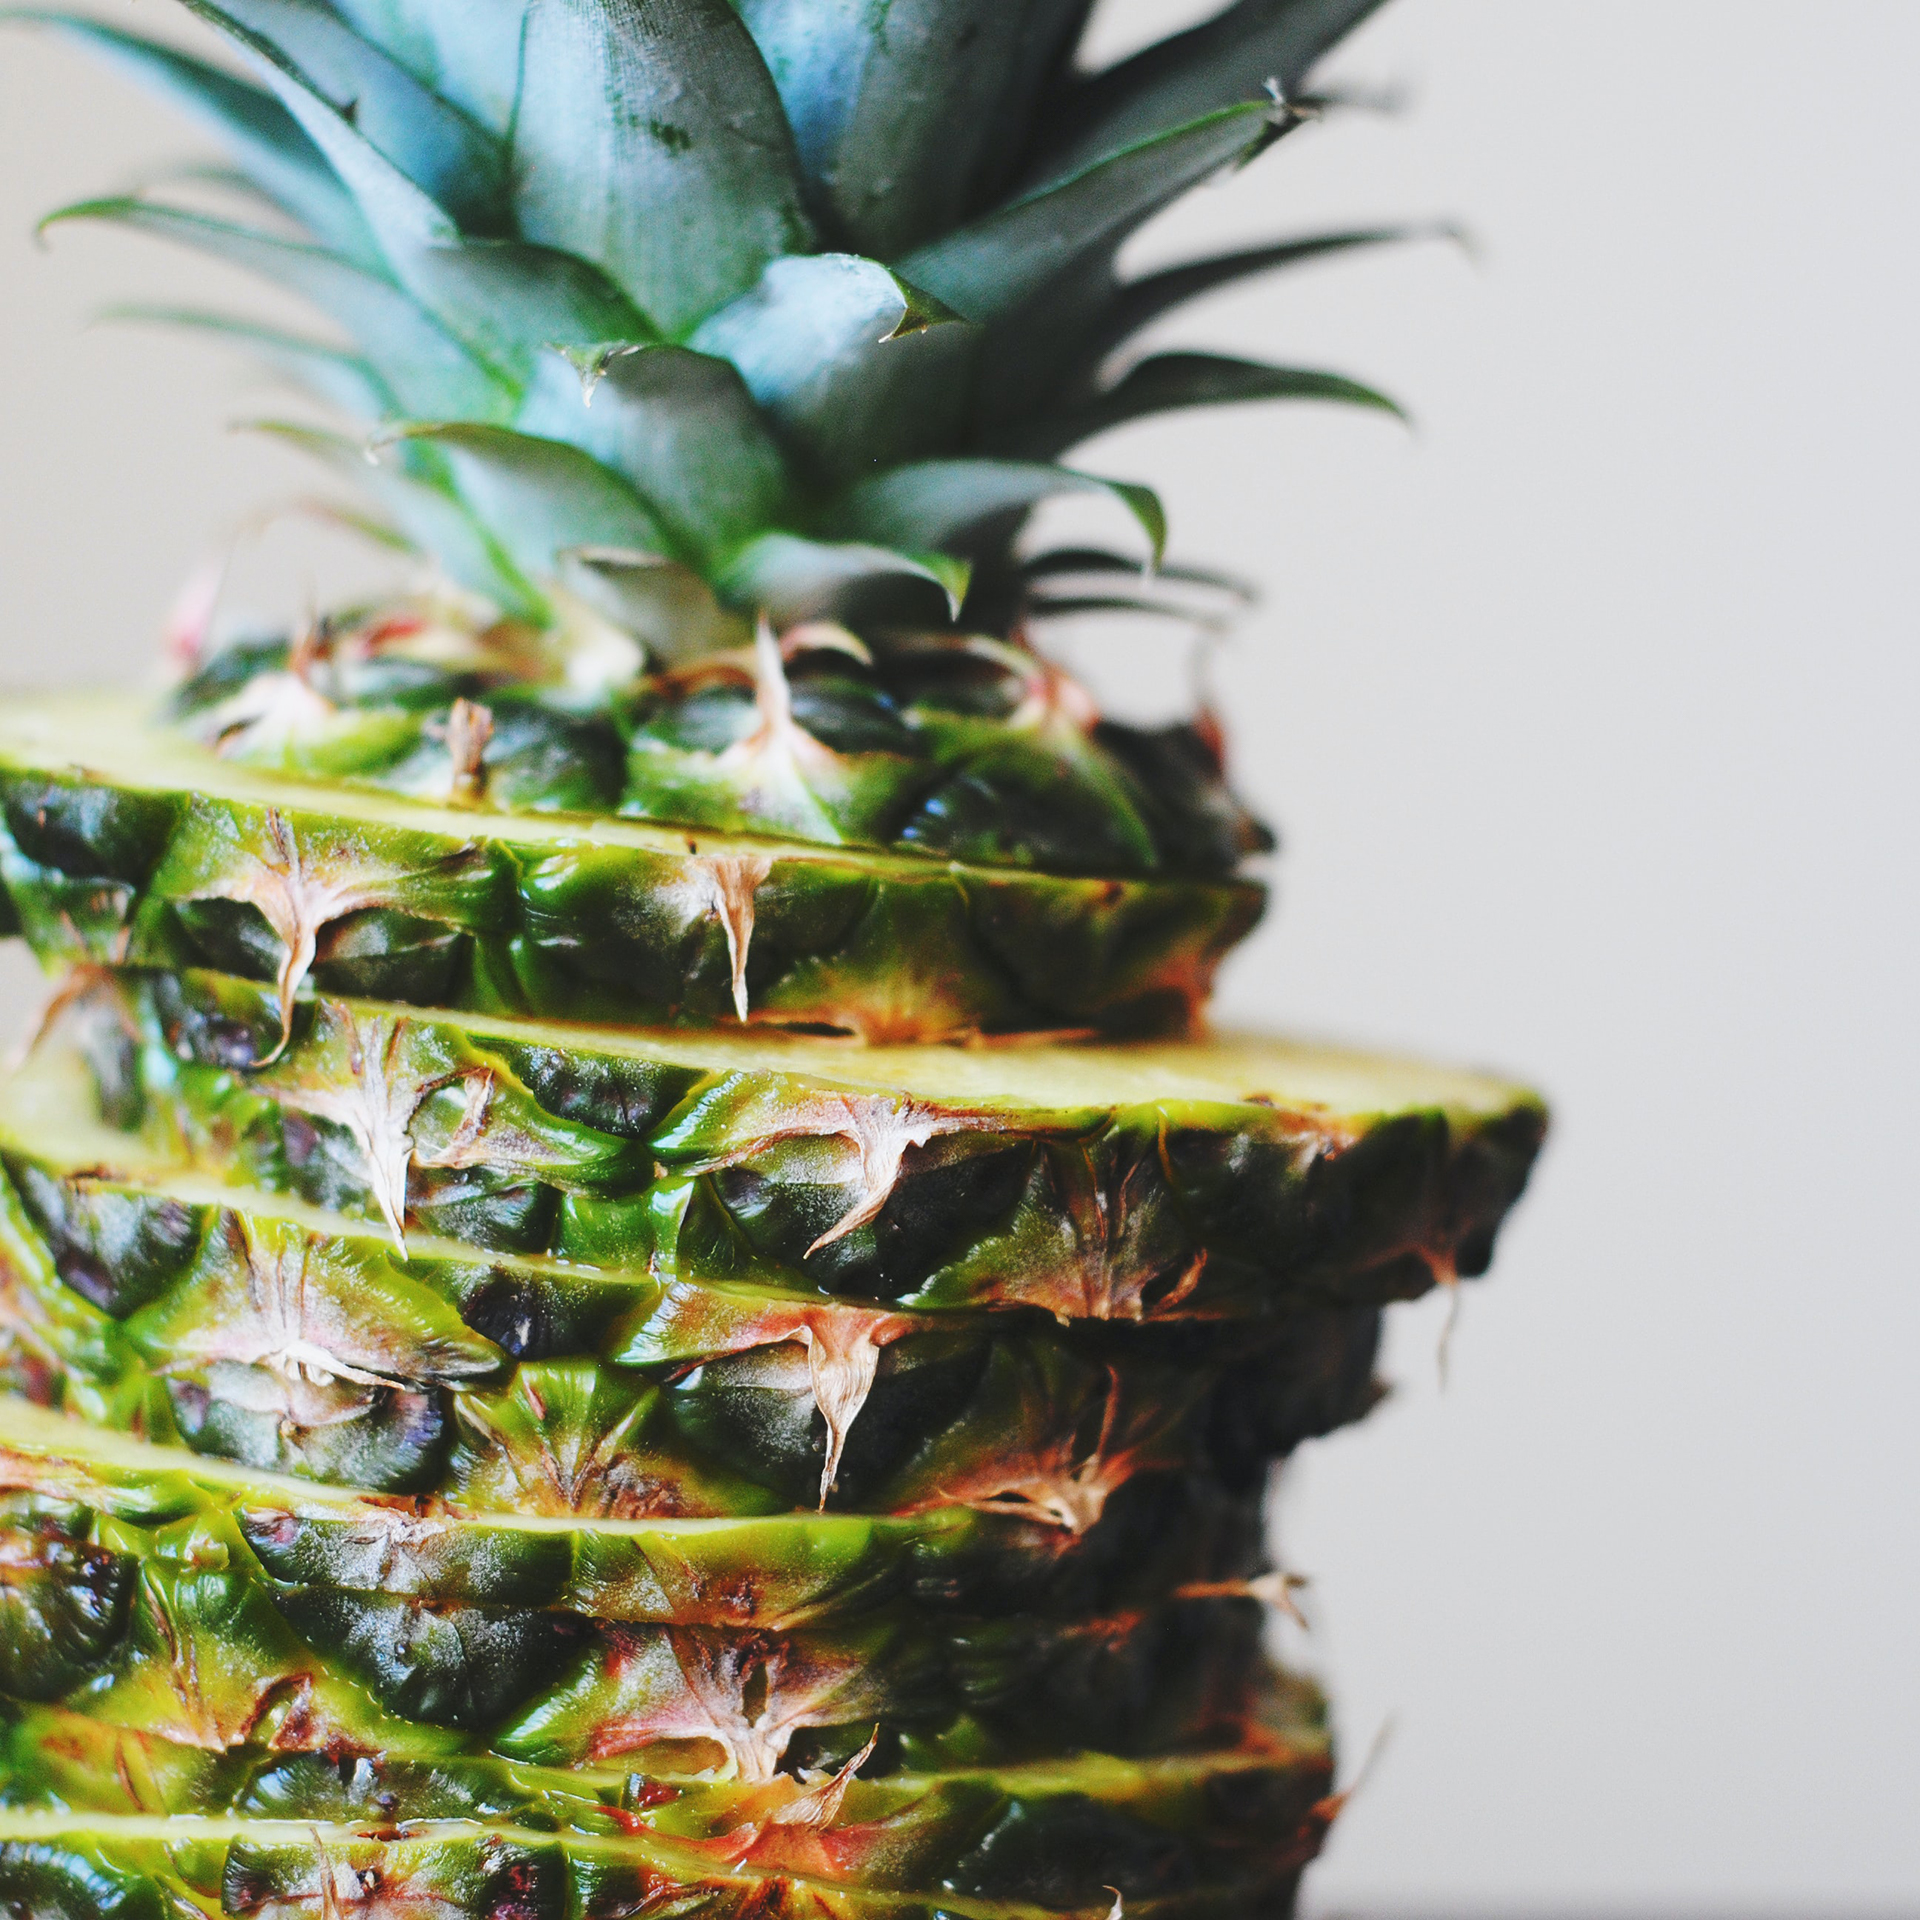 Fair trade pineapple is perfect frozen for using in smoothies